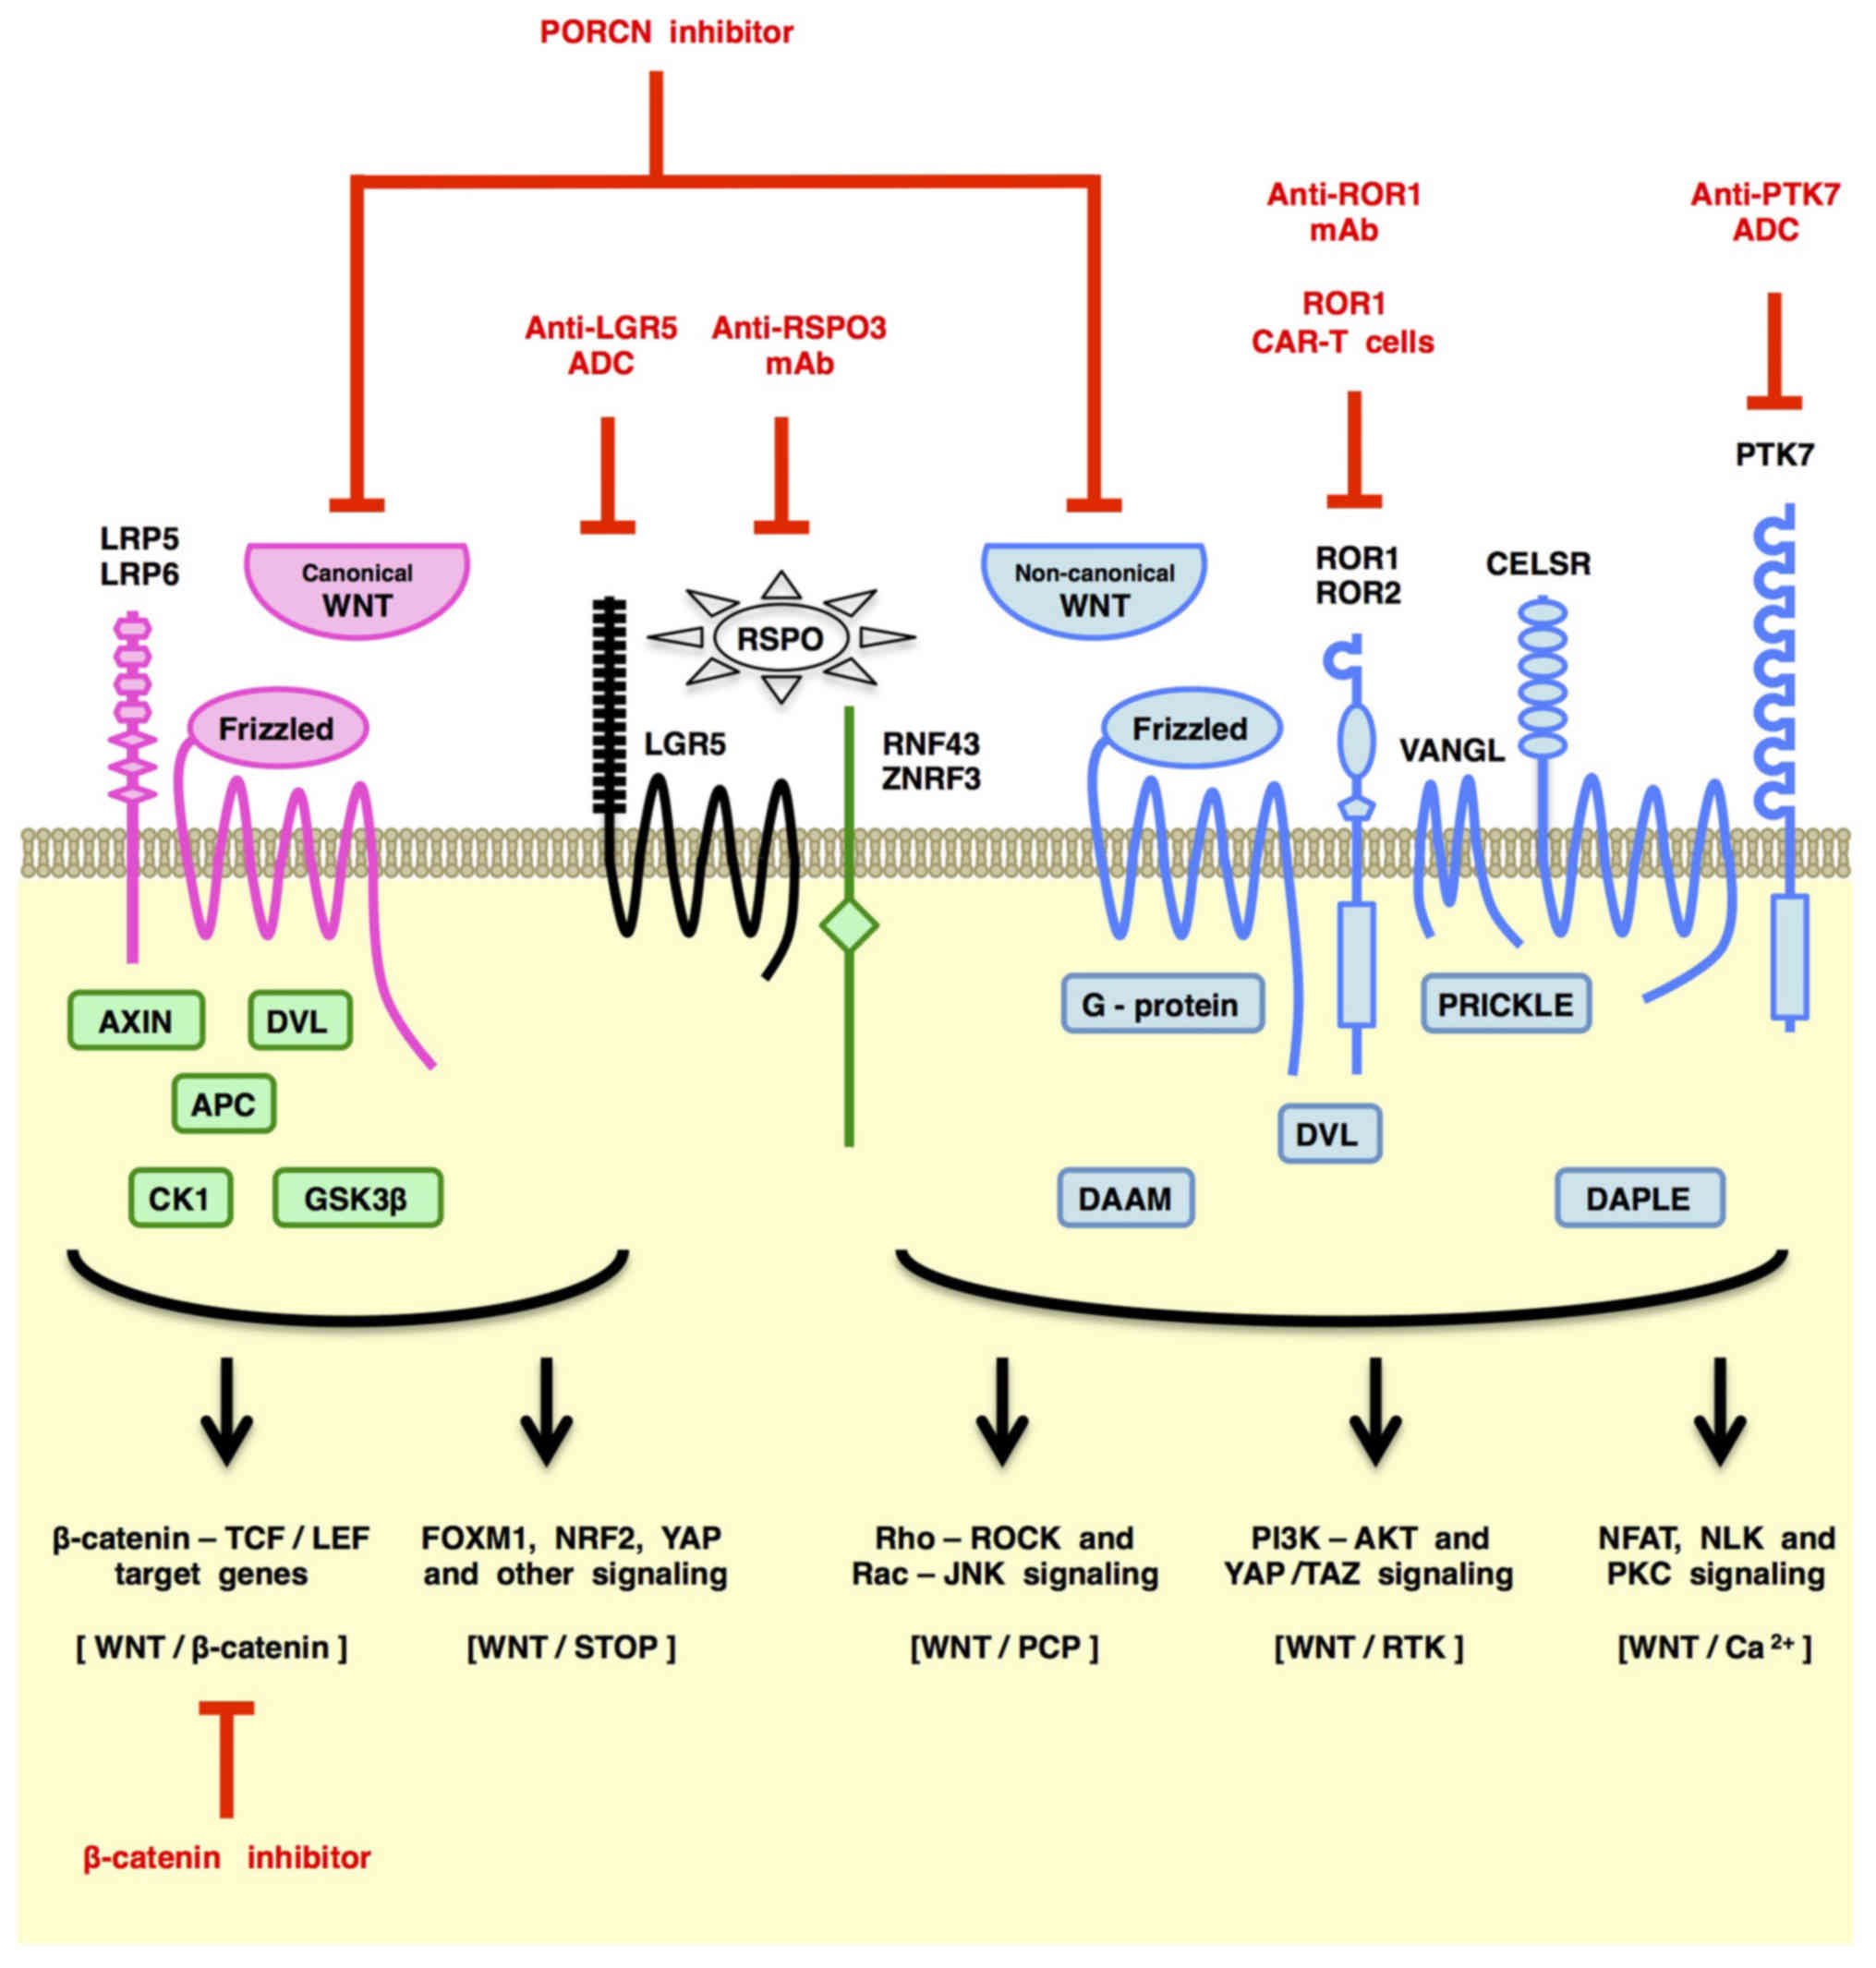 Canonical And Non Canonical Wnt Signaling In Cancer Stem